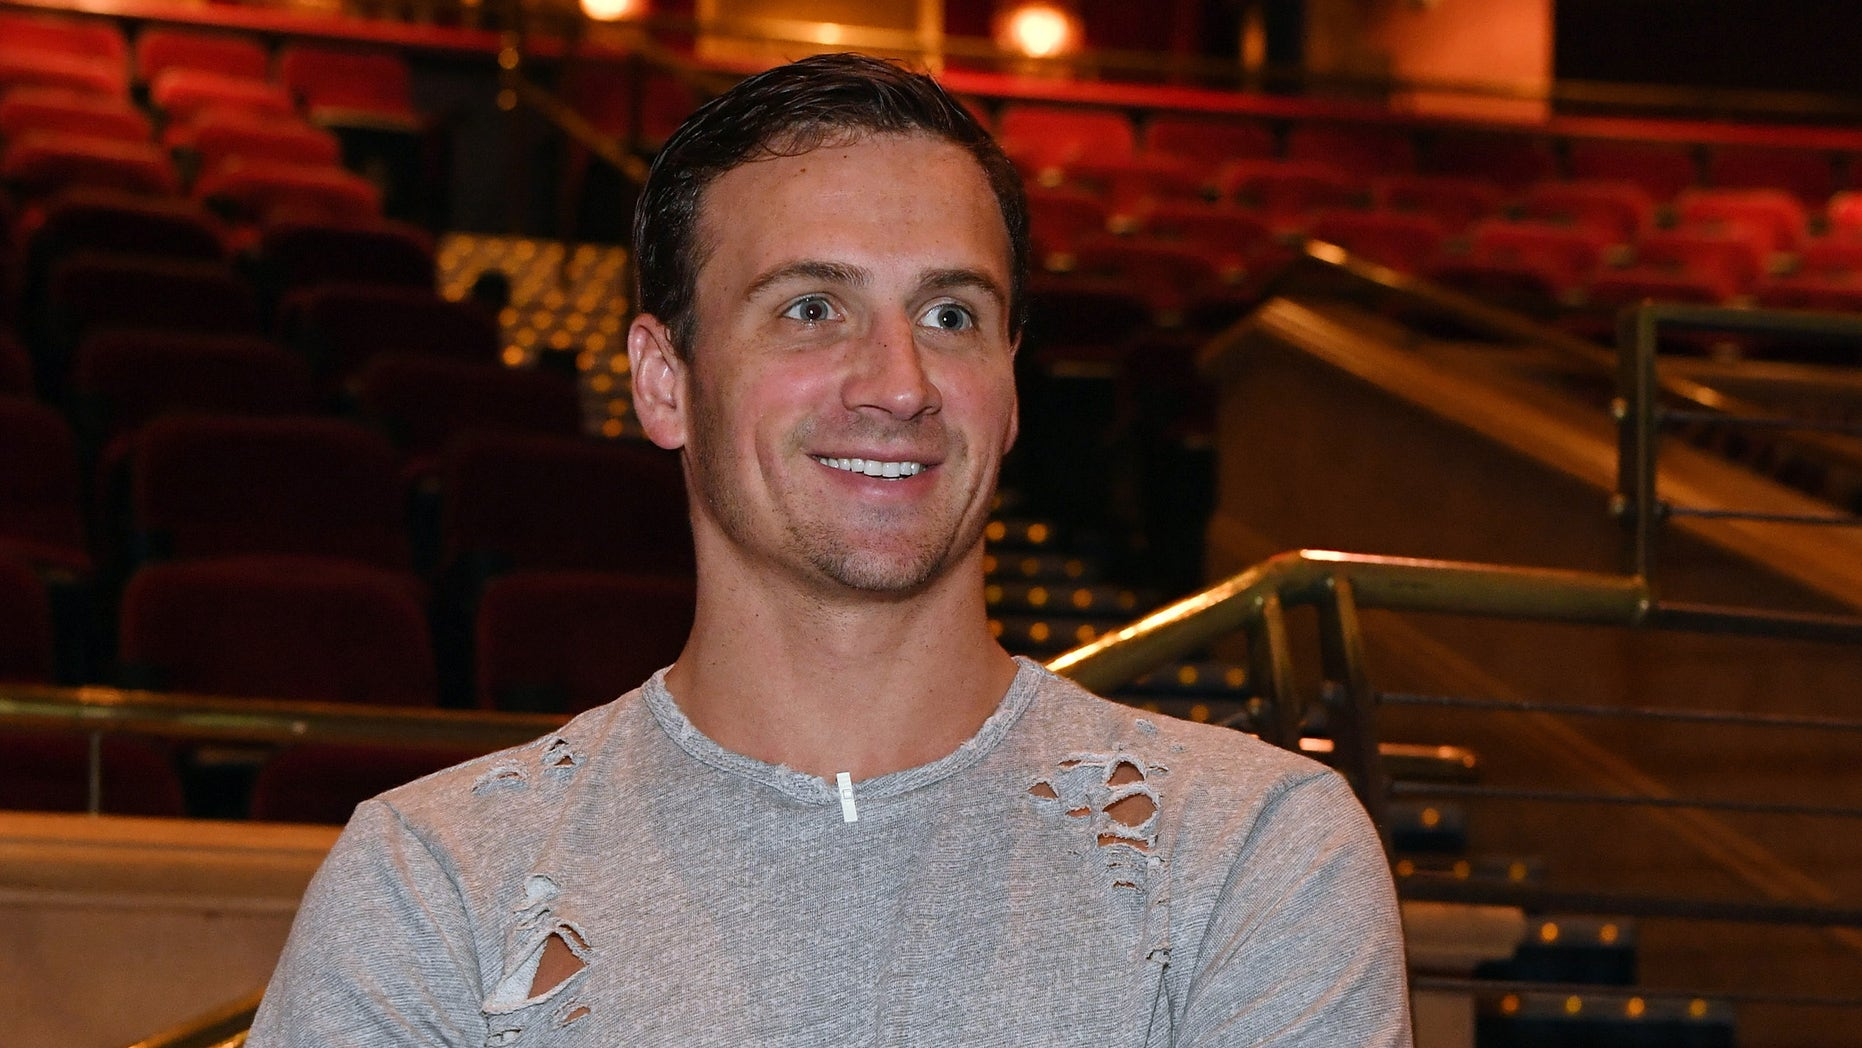 """LAS VEGAS, NV - SEPTEMBER 30:  Olympian Ryan Lochte looks at the """"O"""" theater as he and dancer Cheryl Burke arrive at a rehearsal for their """"Dancing with the Stars"""" performance with the cast of """"O by Cirque du Soleil"""" at the Bellagio on September 30, 2016 in Las Vegas, Nevada.  (Photo by Ethan Miller/Getty Images for Cirque du Soleil)"""